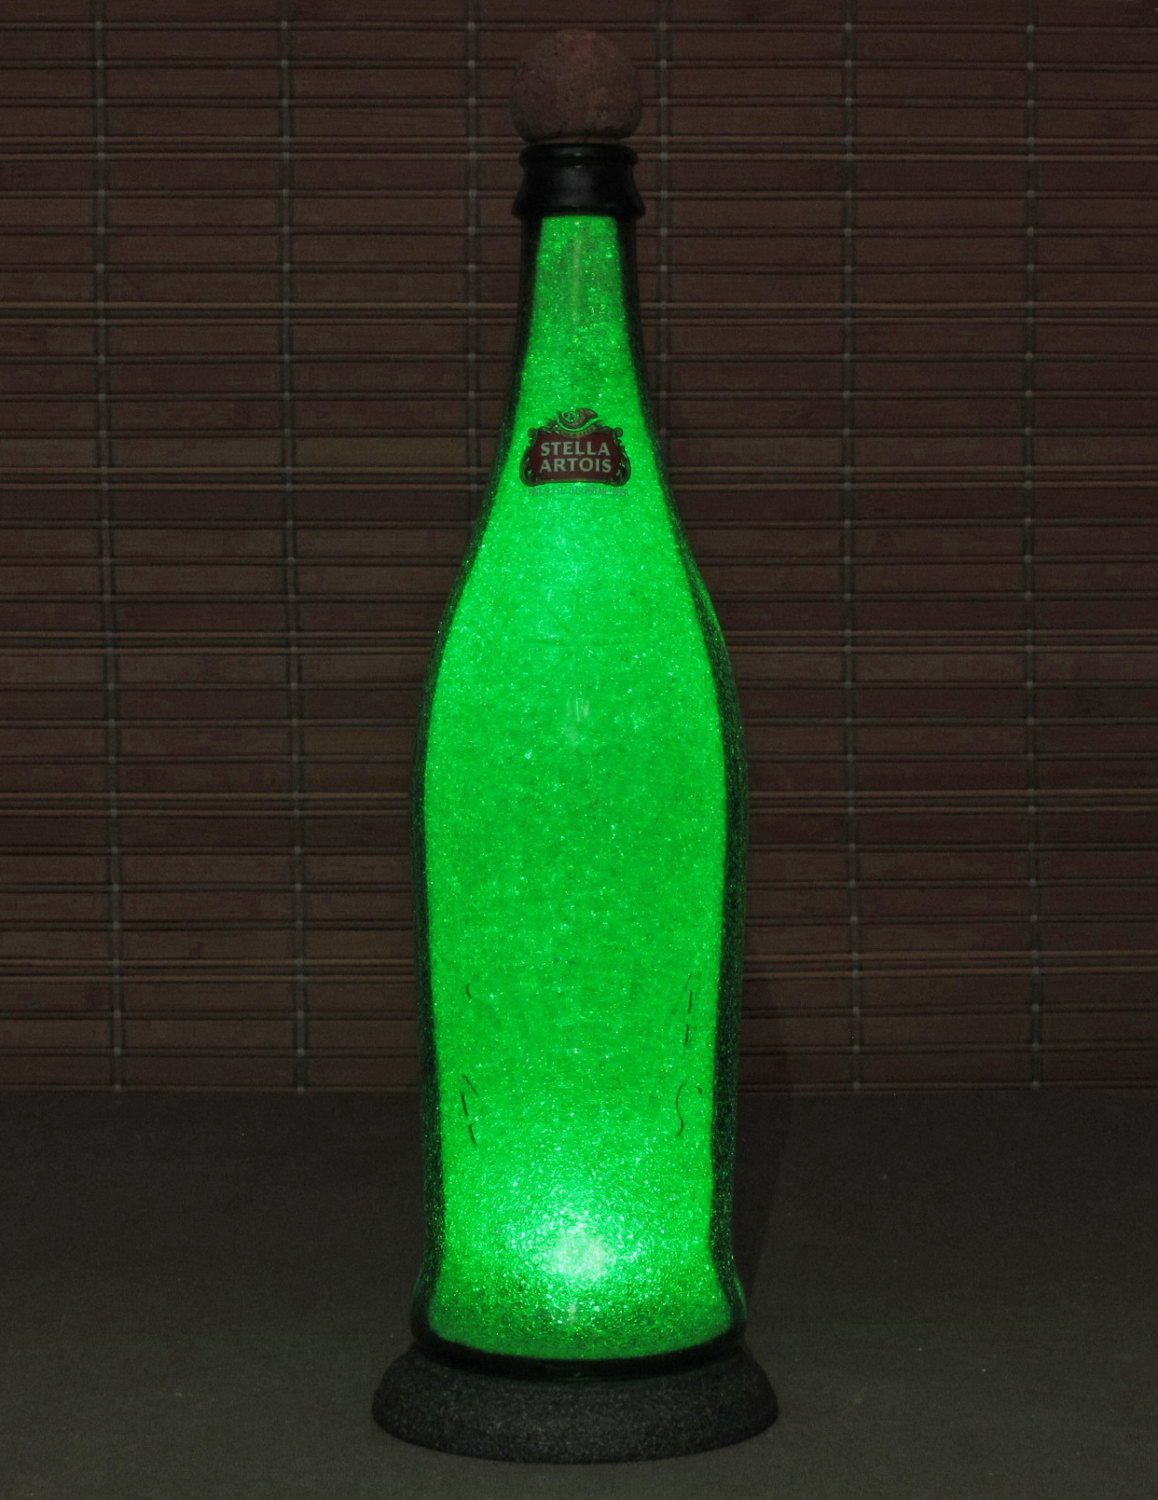 Stella Artois Holiday Bottle 750 ml Beer Lamp Light Bar Man Cave Sign St Patricks Day